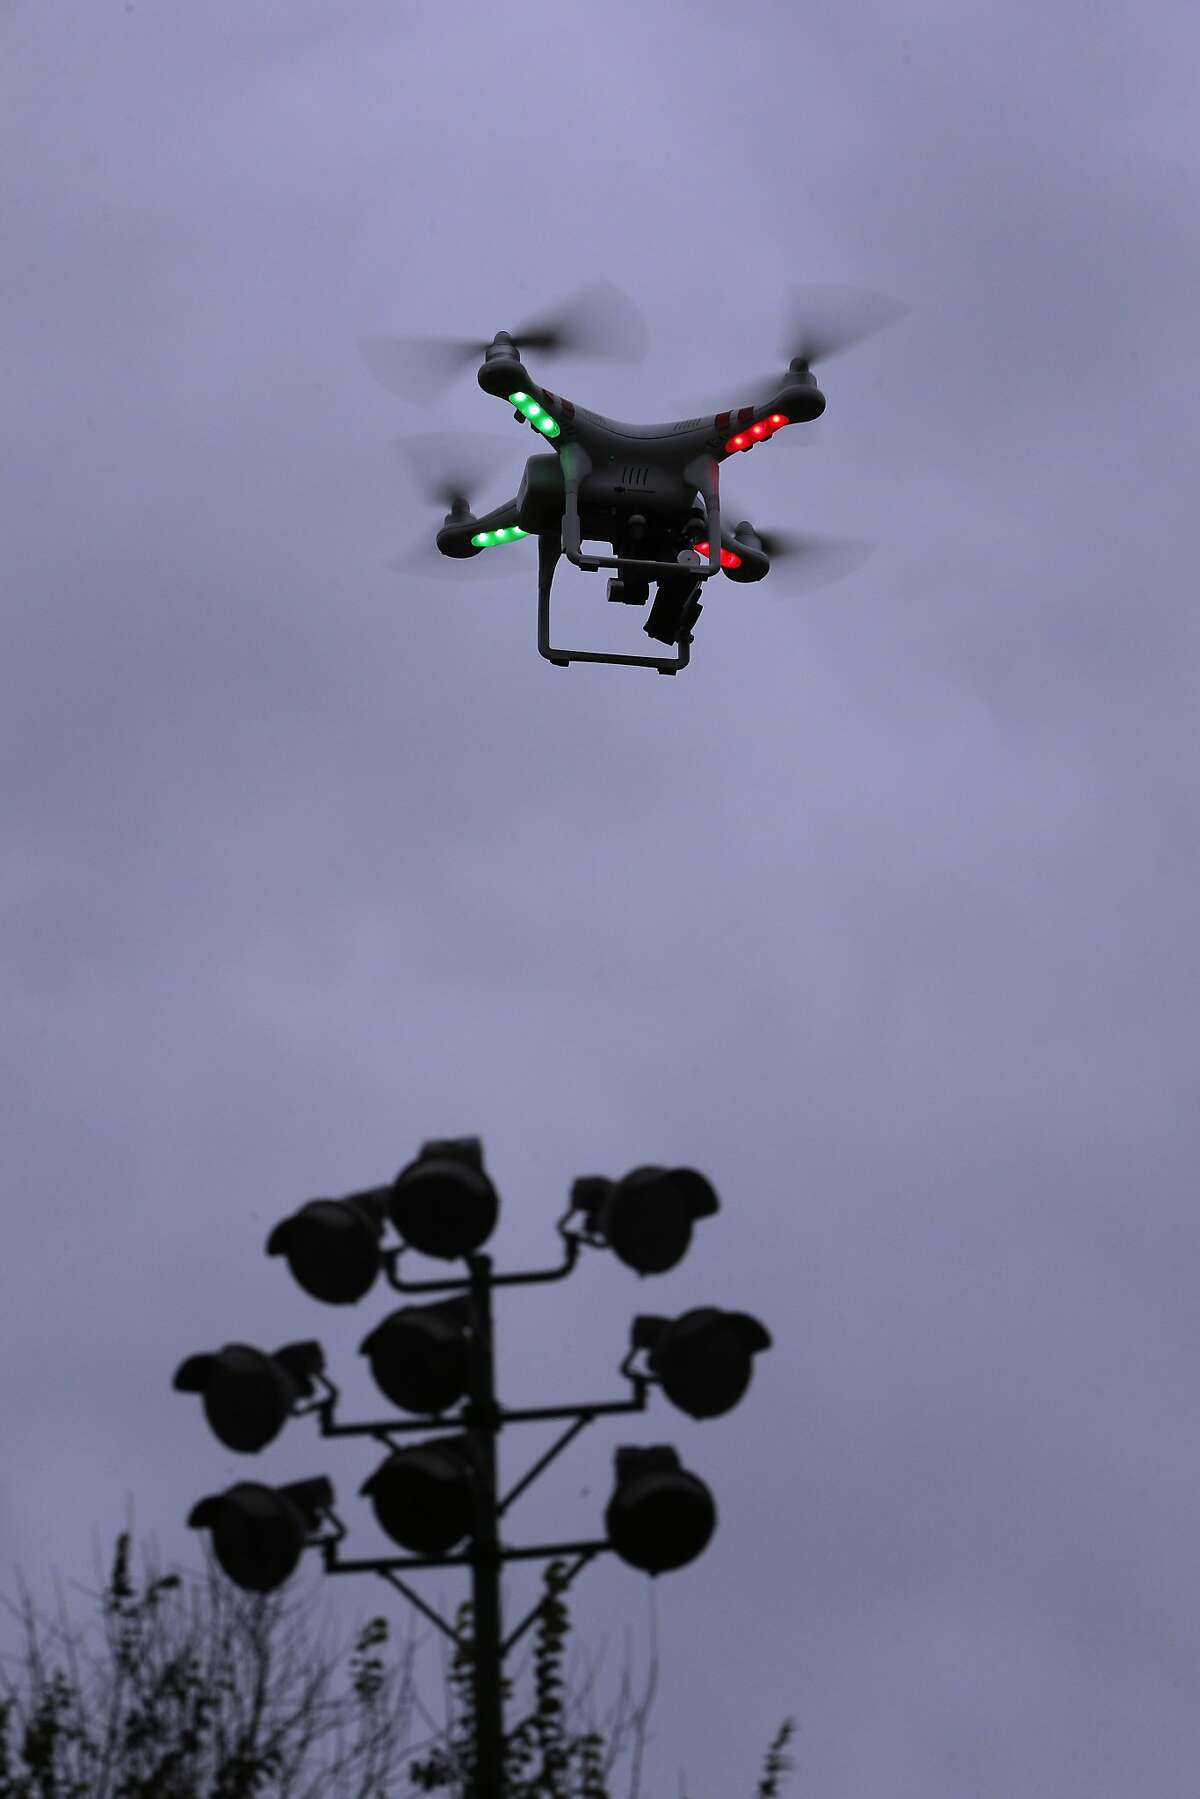 Fewer drones (and drone-related accidents).